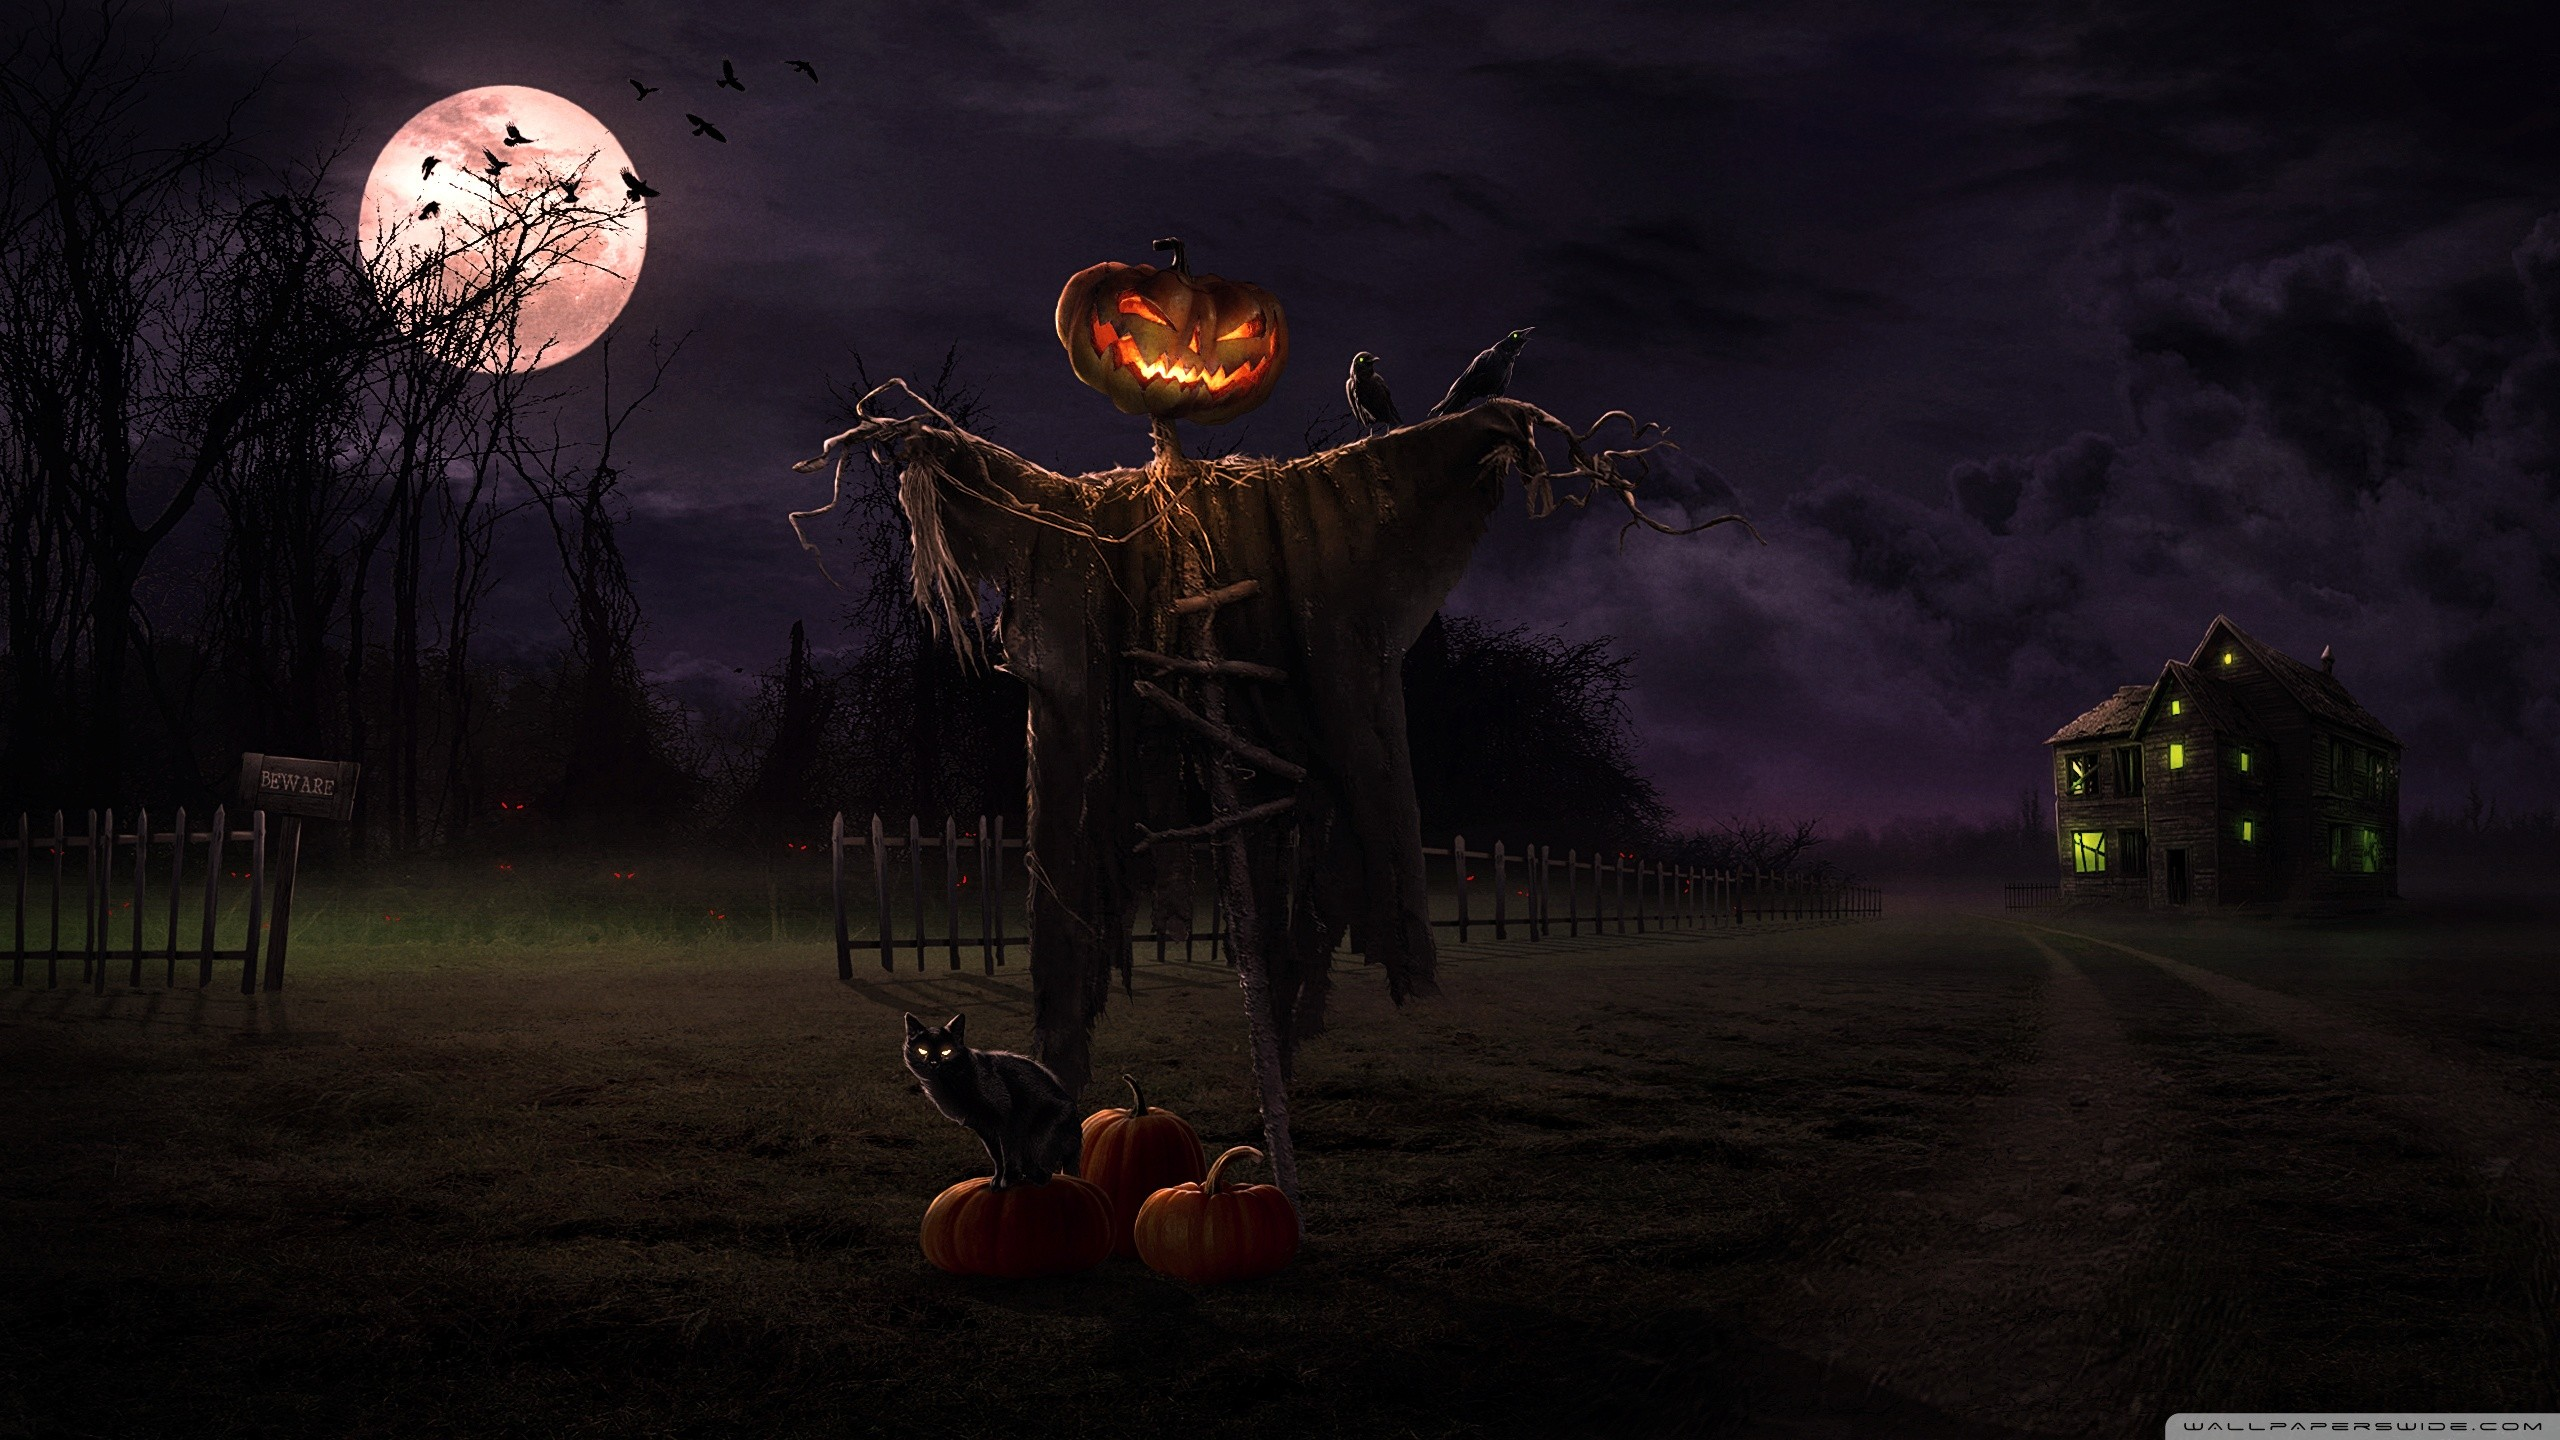 HD] Happy Halloween Wallpapers for Desktop iPhone 2560x1440